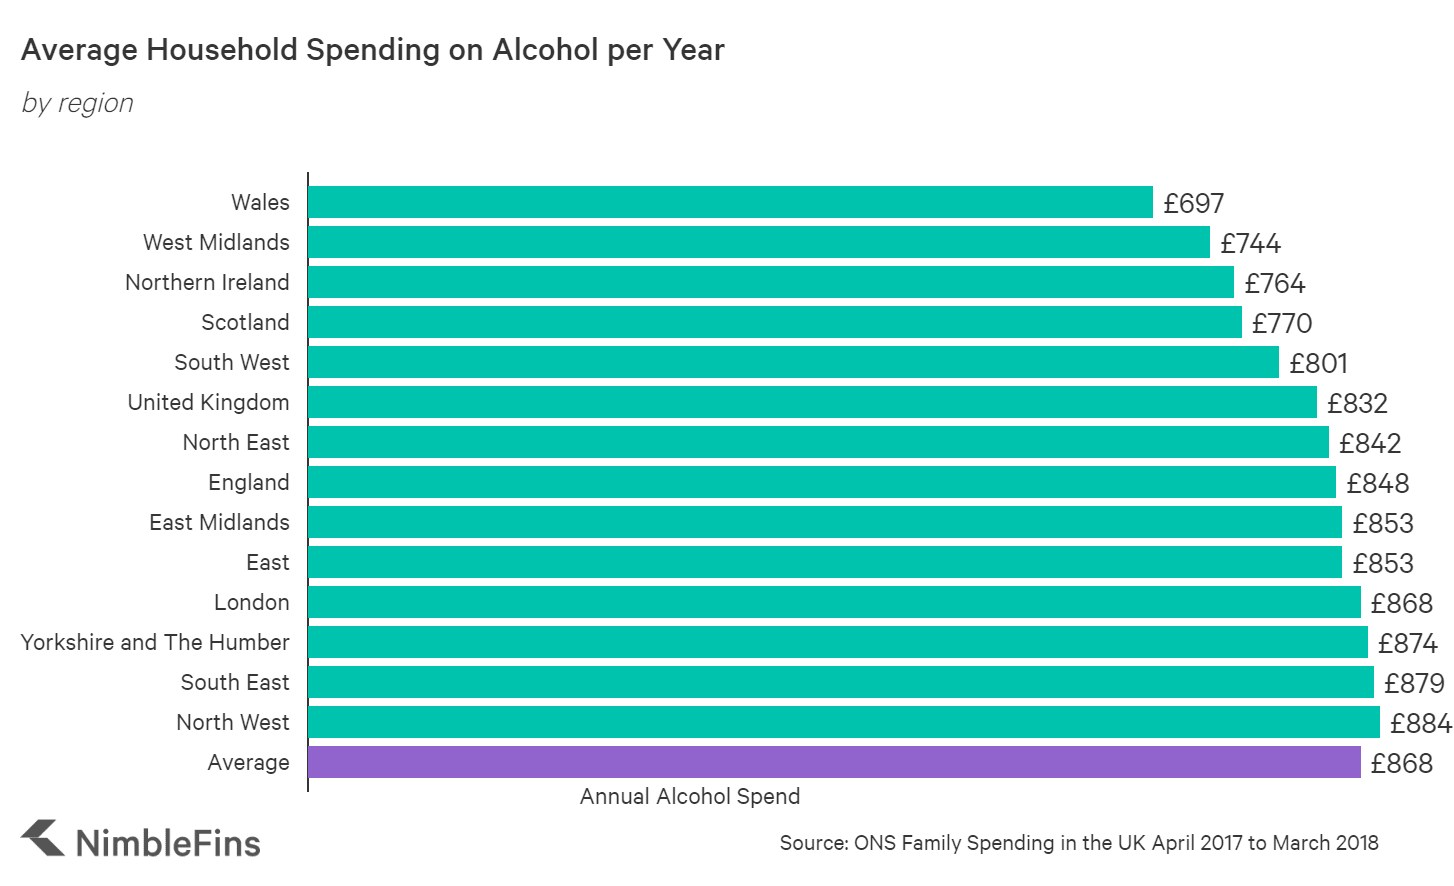 chart showing annual alcohol spending in regions across the UK